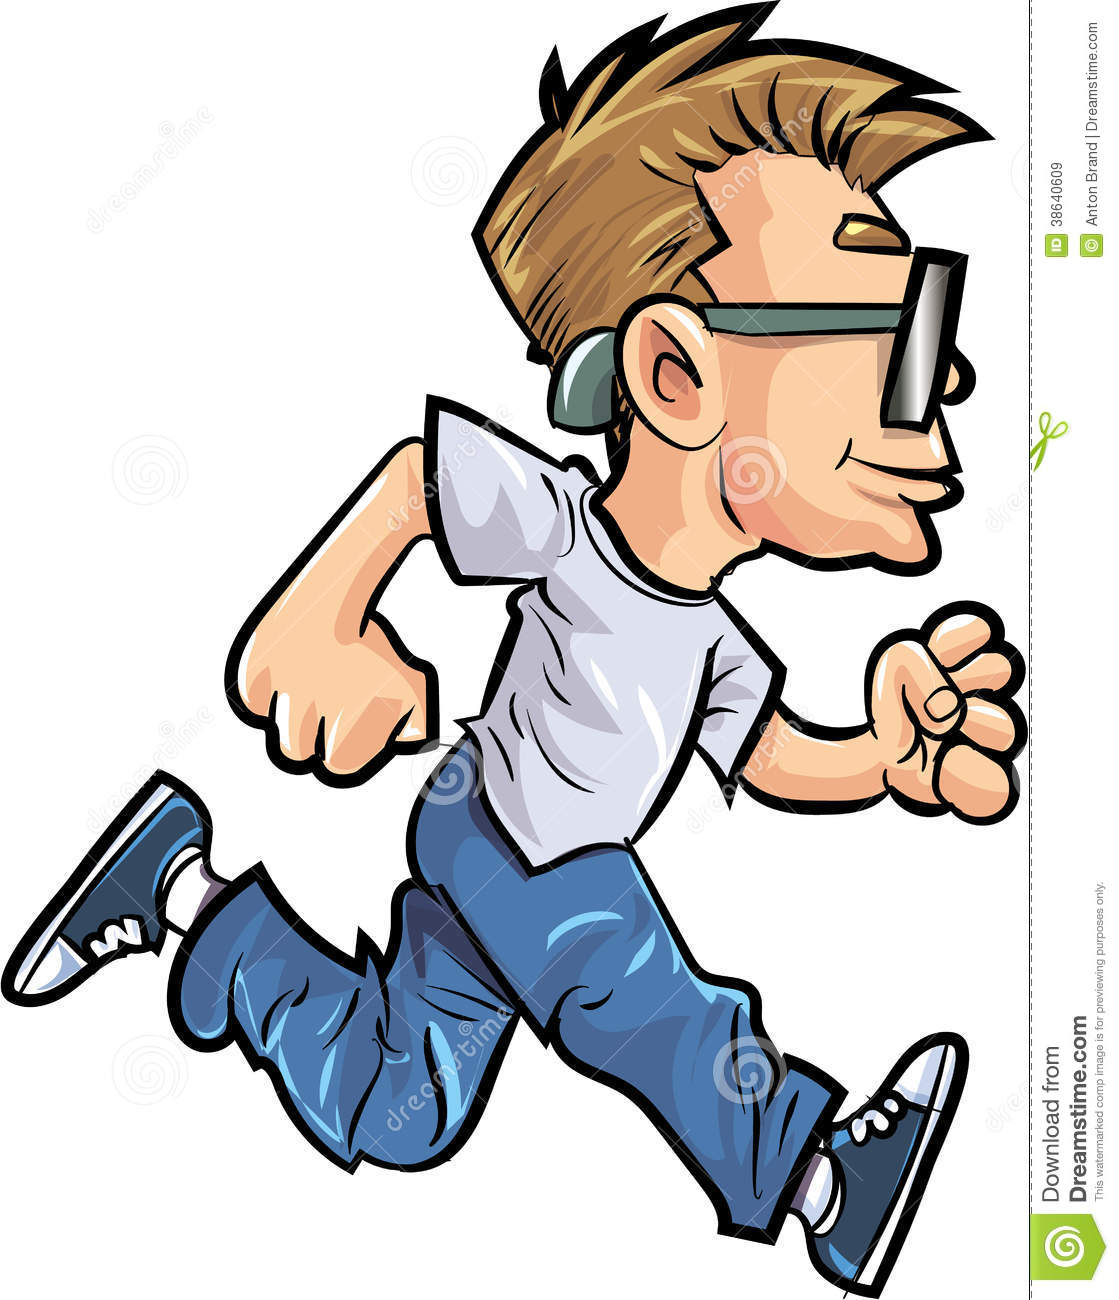 cartoon running man with glasses stock illustration illustration rh dreamstime com cartoon man running animation cartoon man running with briefcase